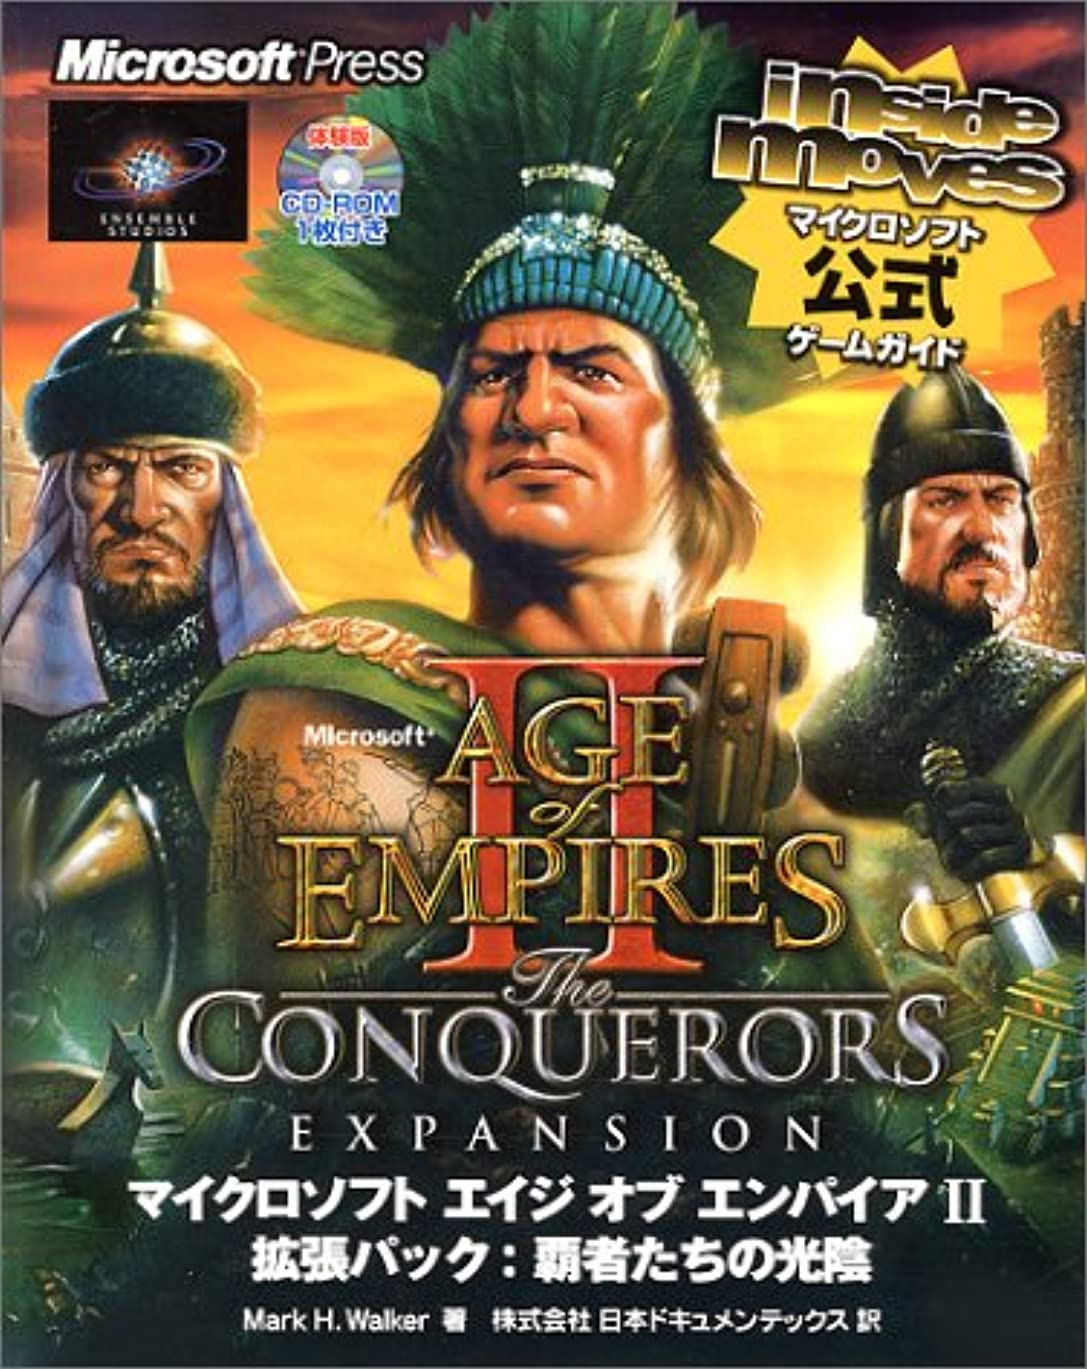 仮説断線ボトルネックMicrosoft Age of Empires 2:The Conquerors Expansion:inside moves (マイクロソフト公式ゲームガイド―Inside moves)